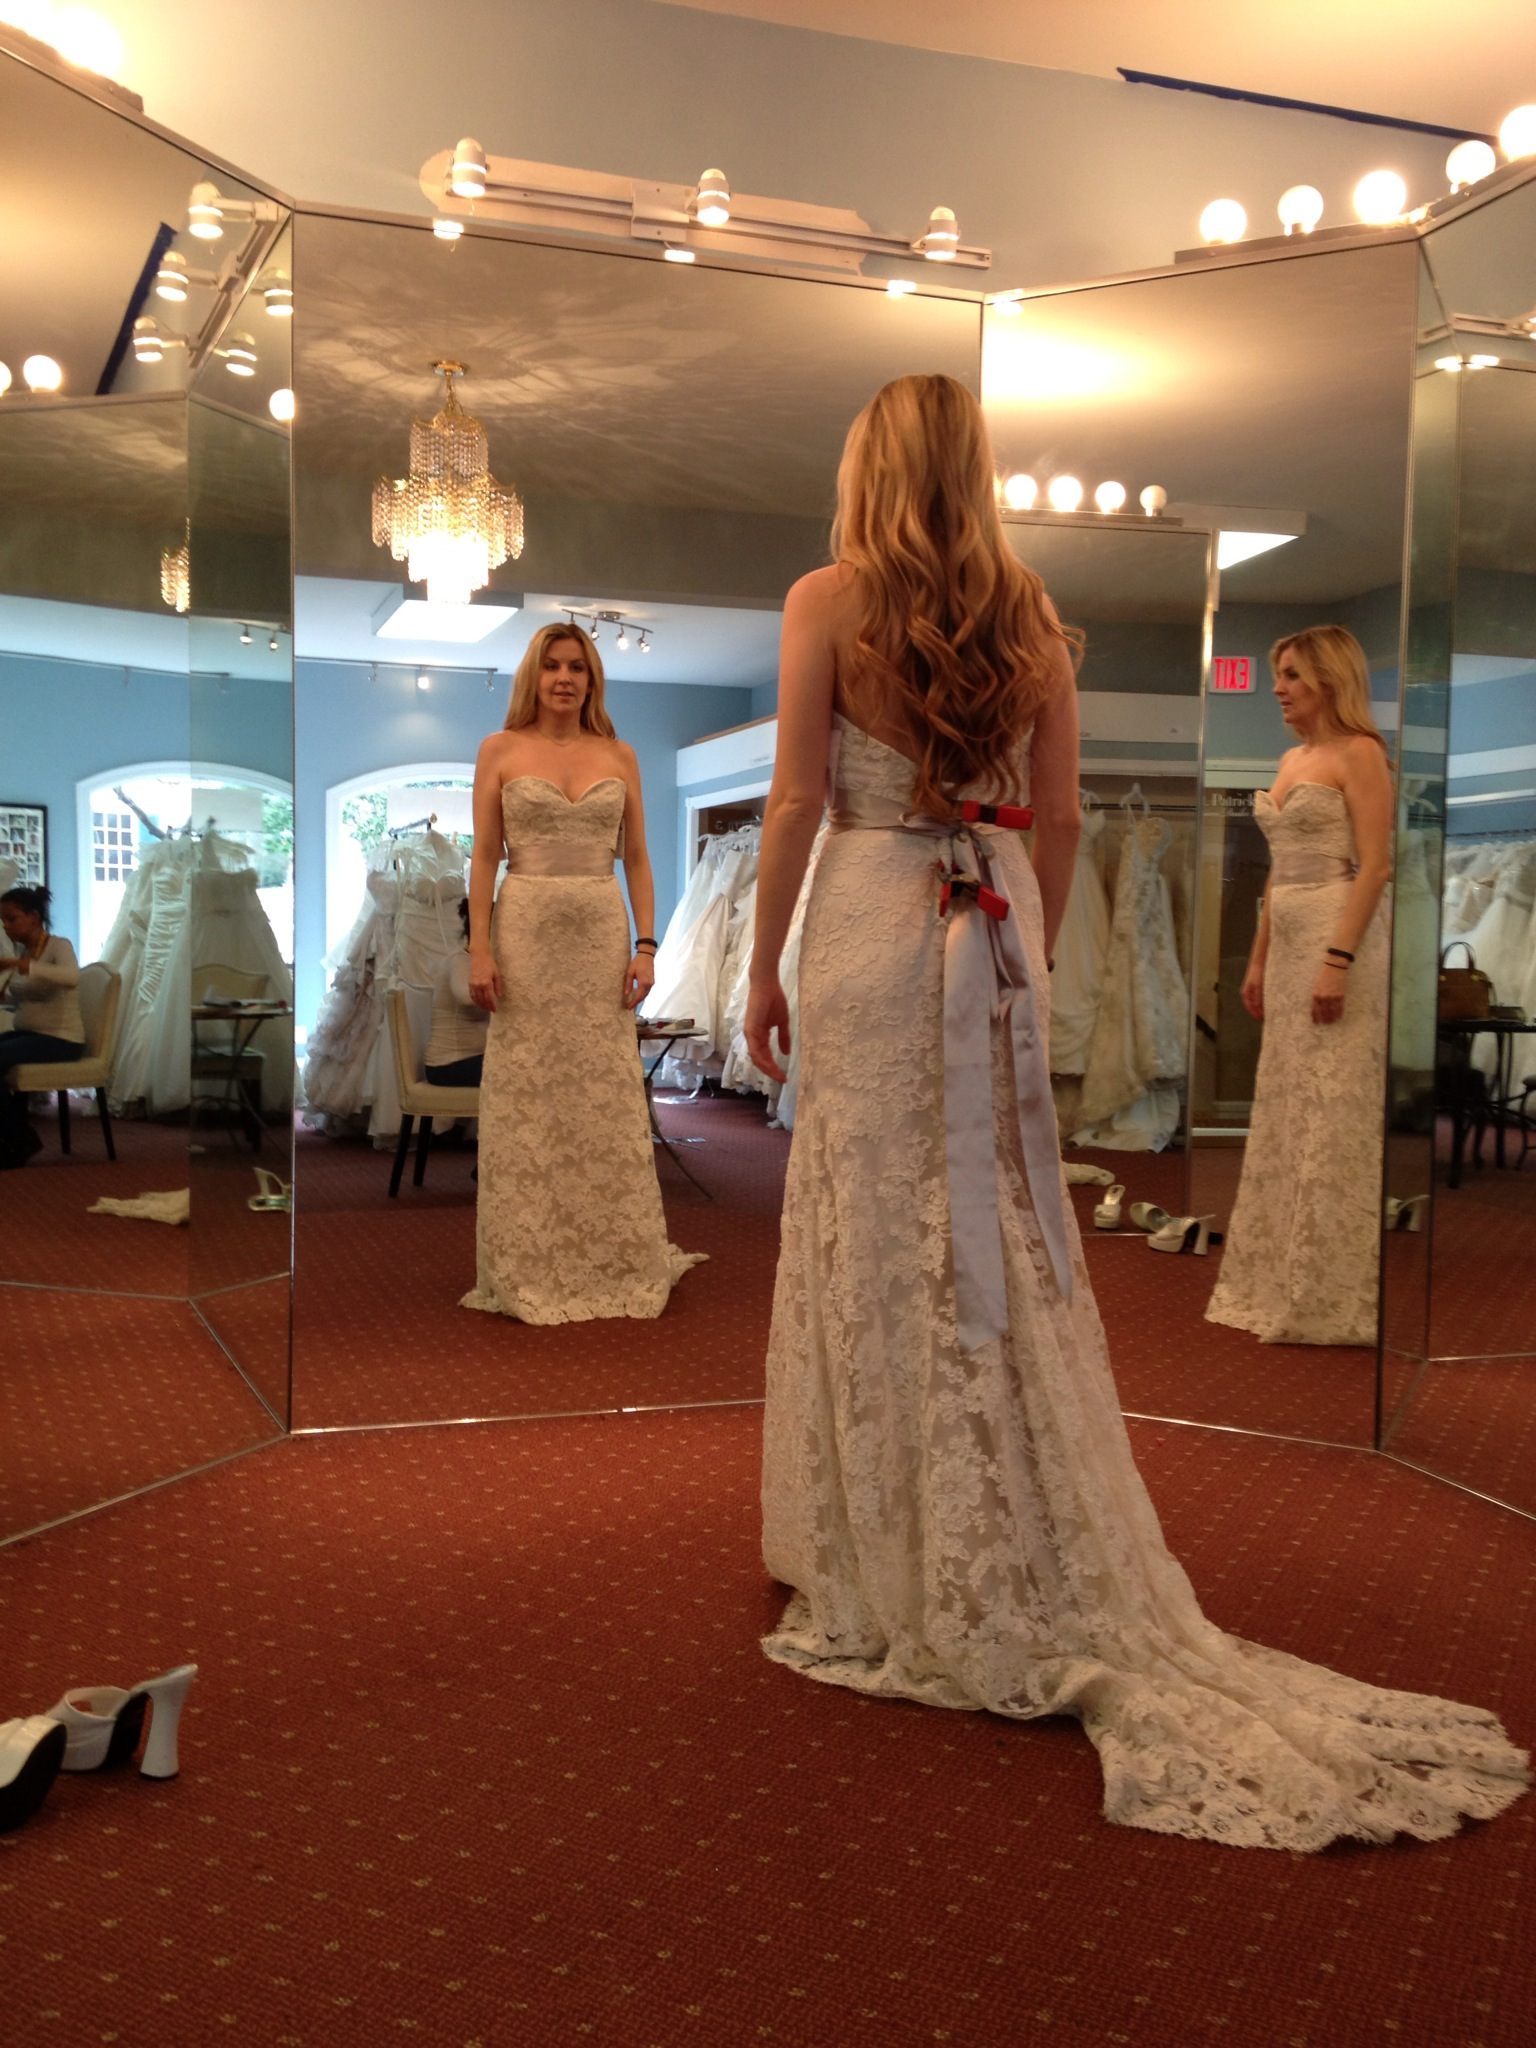 Envisioning the gown she asked for.